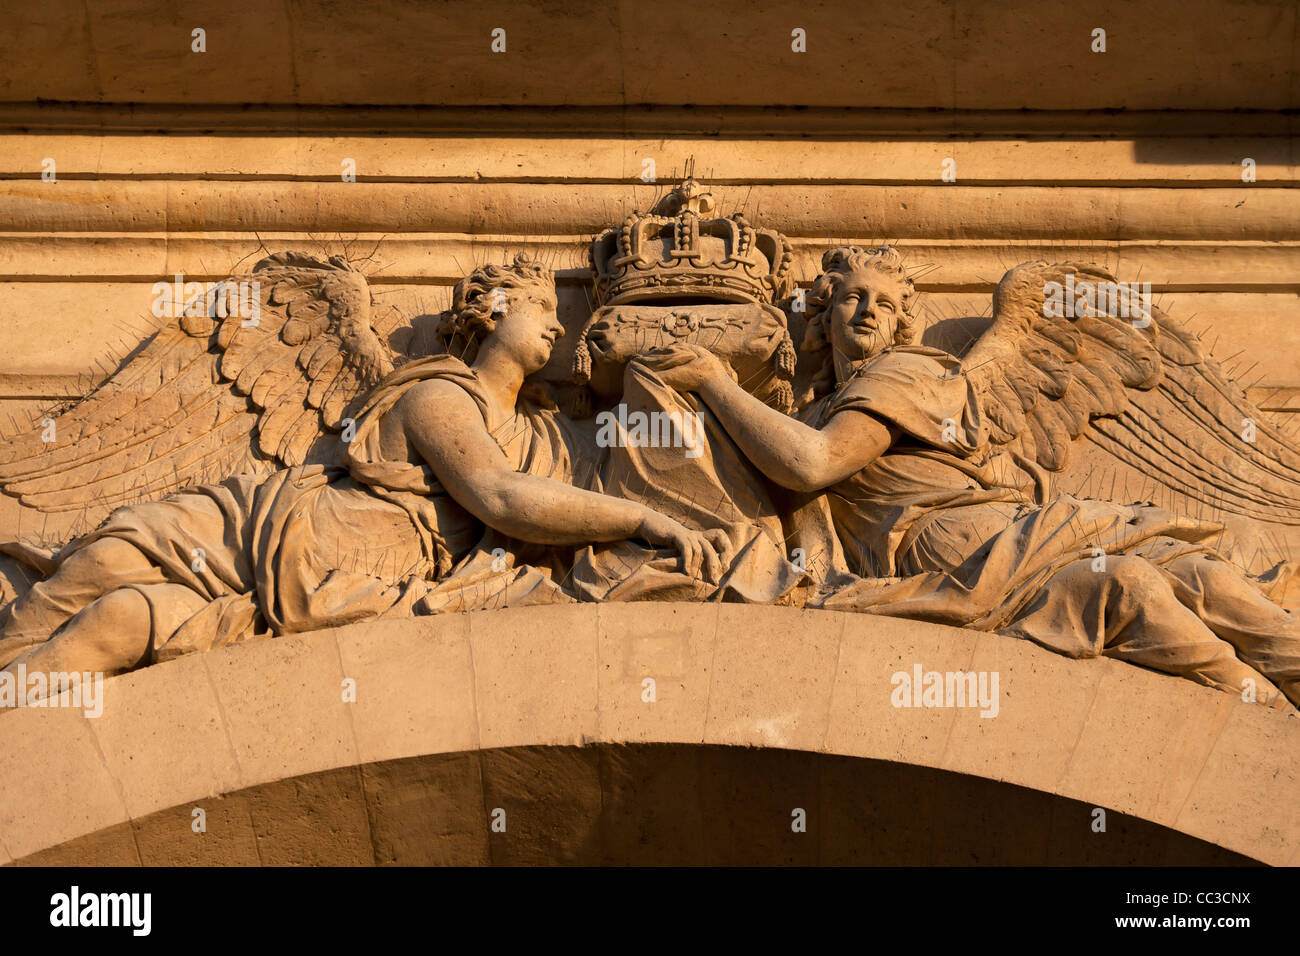 Relief sculpture on the Dome Church at Les Invalides, Paris, France - Stock Image